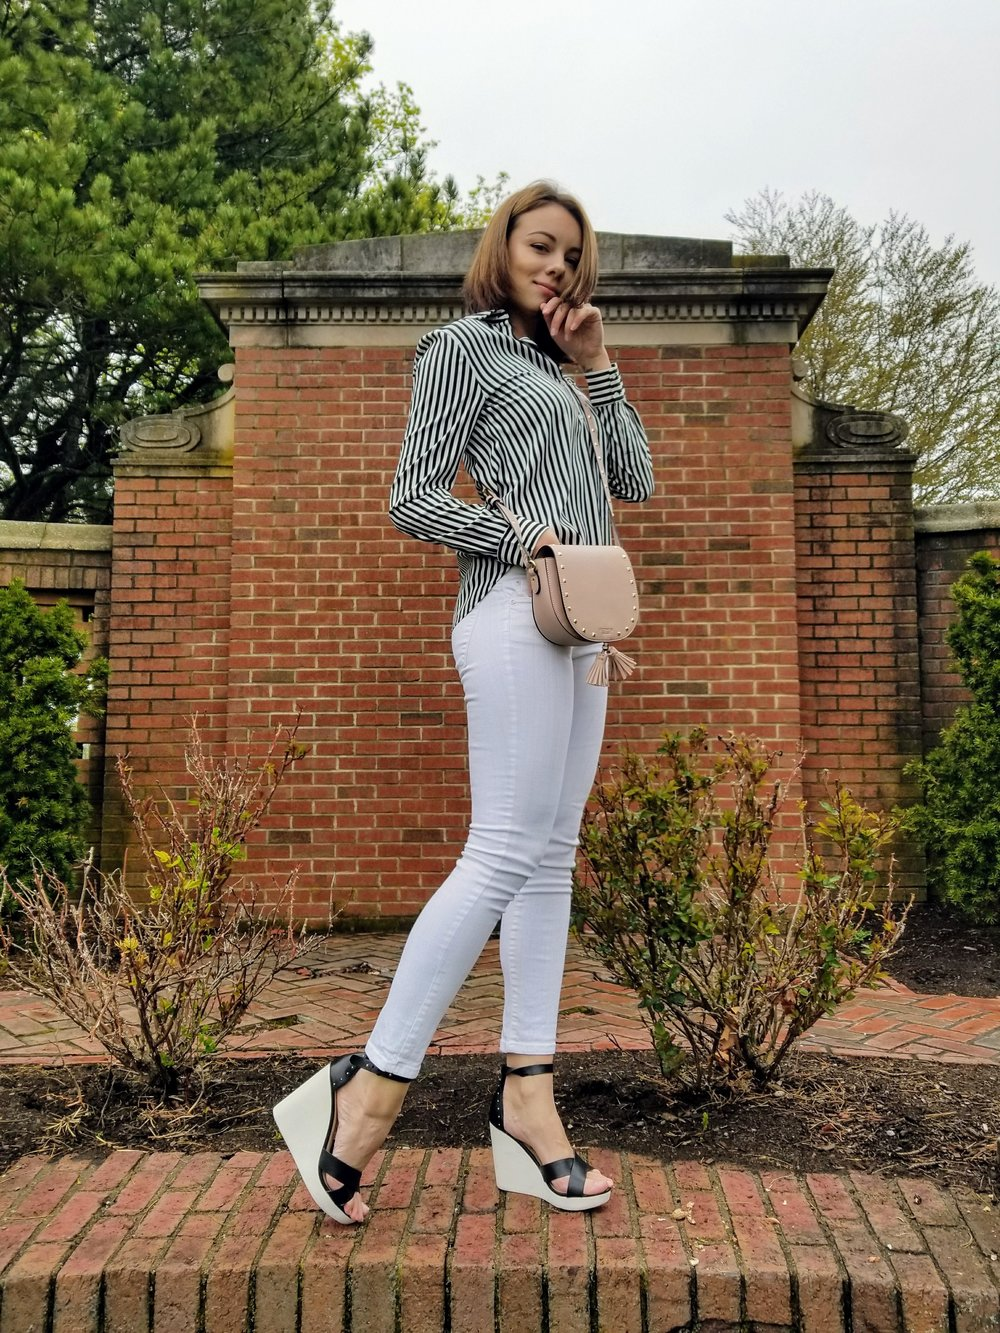 A blogger posing in the garden, wearing white jeans, black and white wedges, and a blouse with black and white stripes.